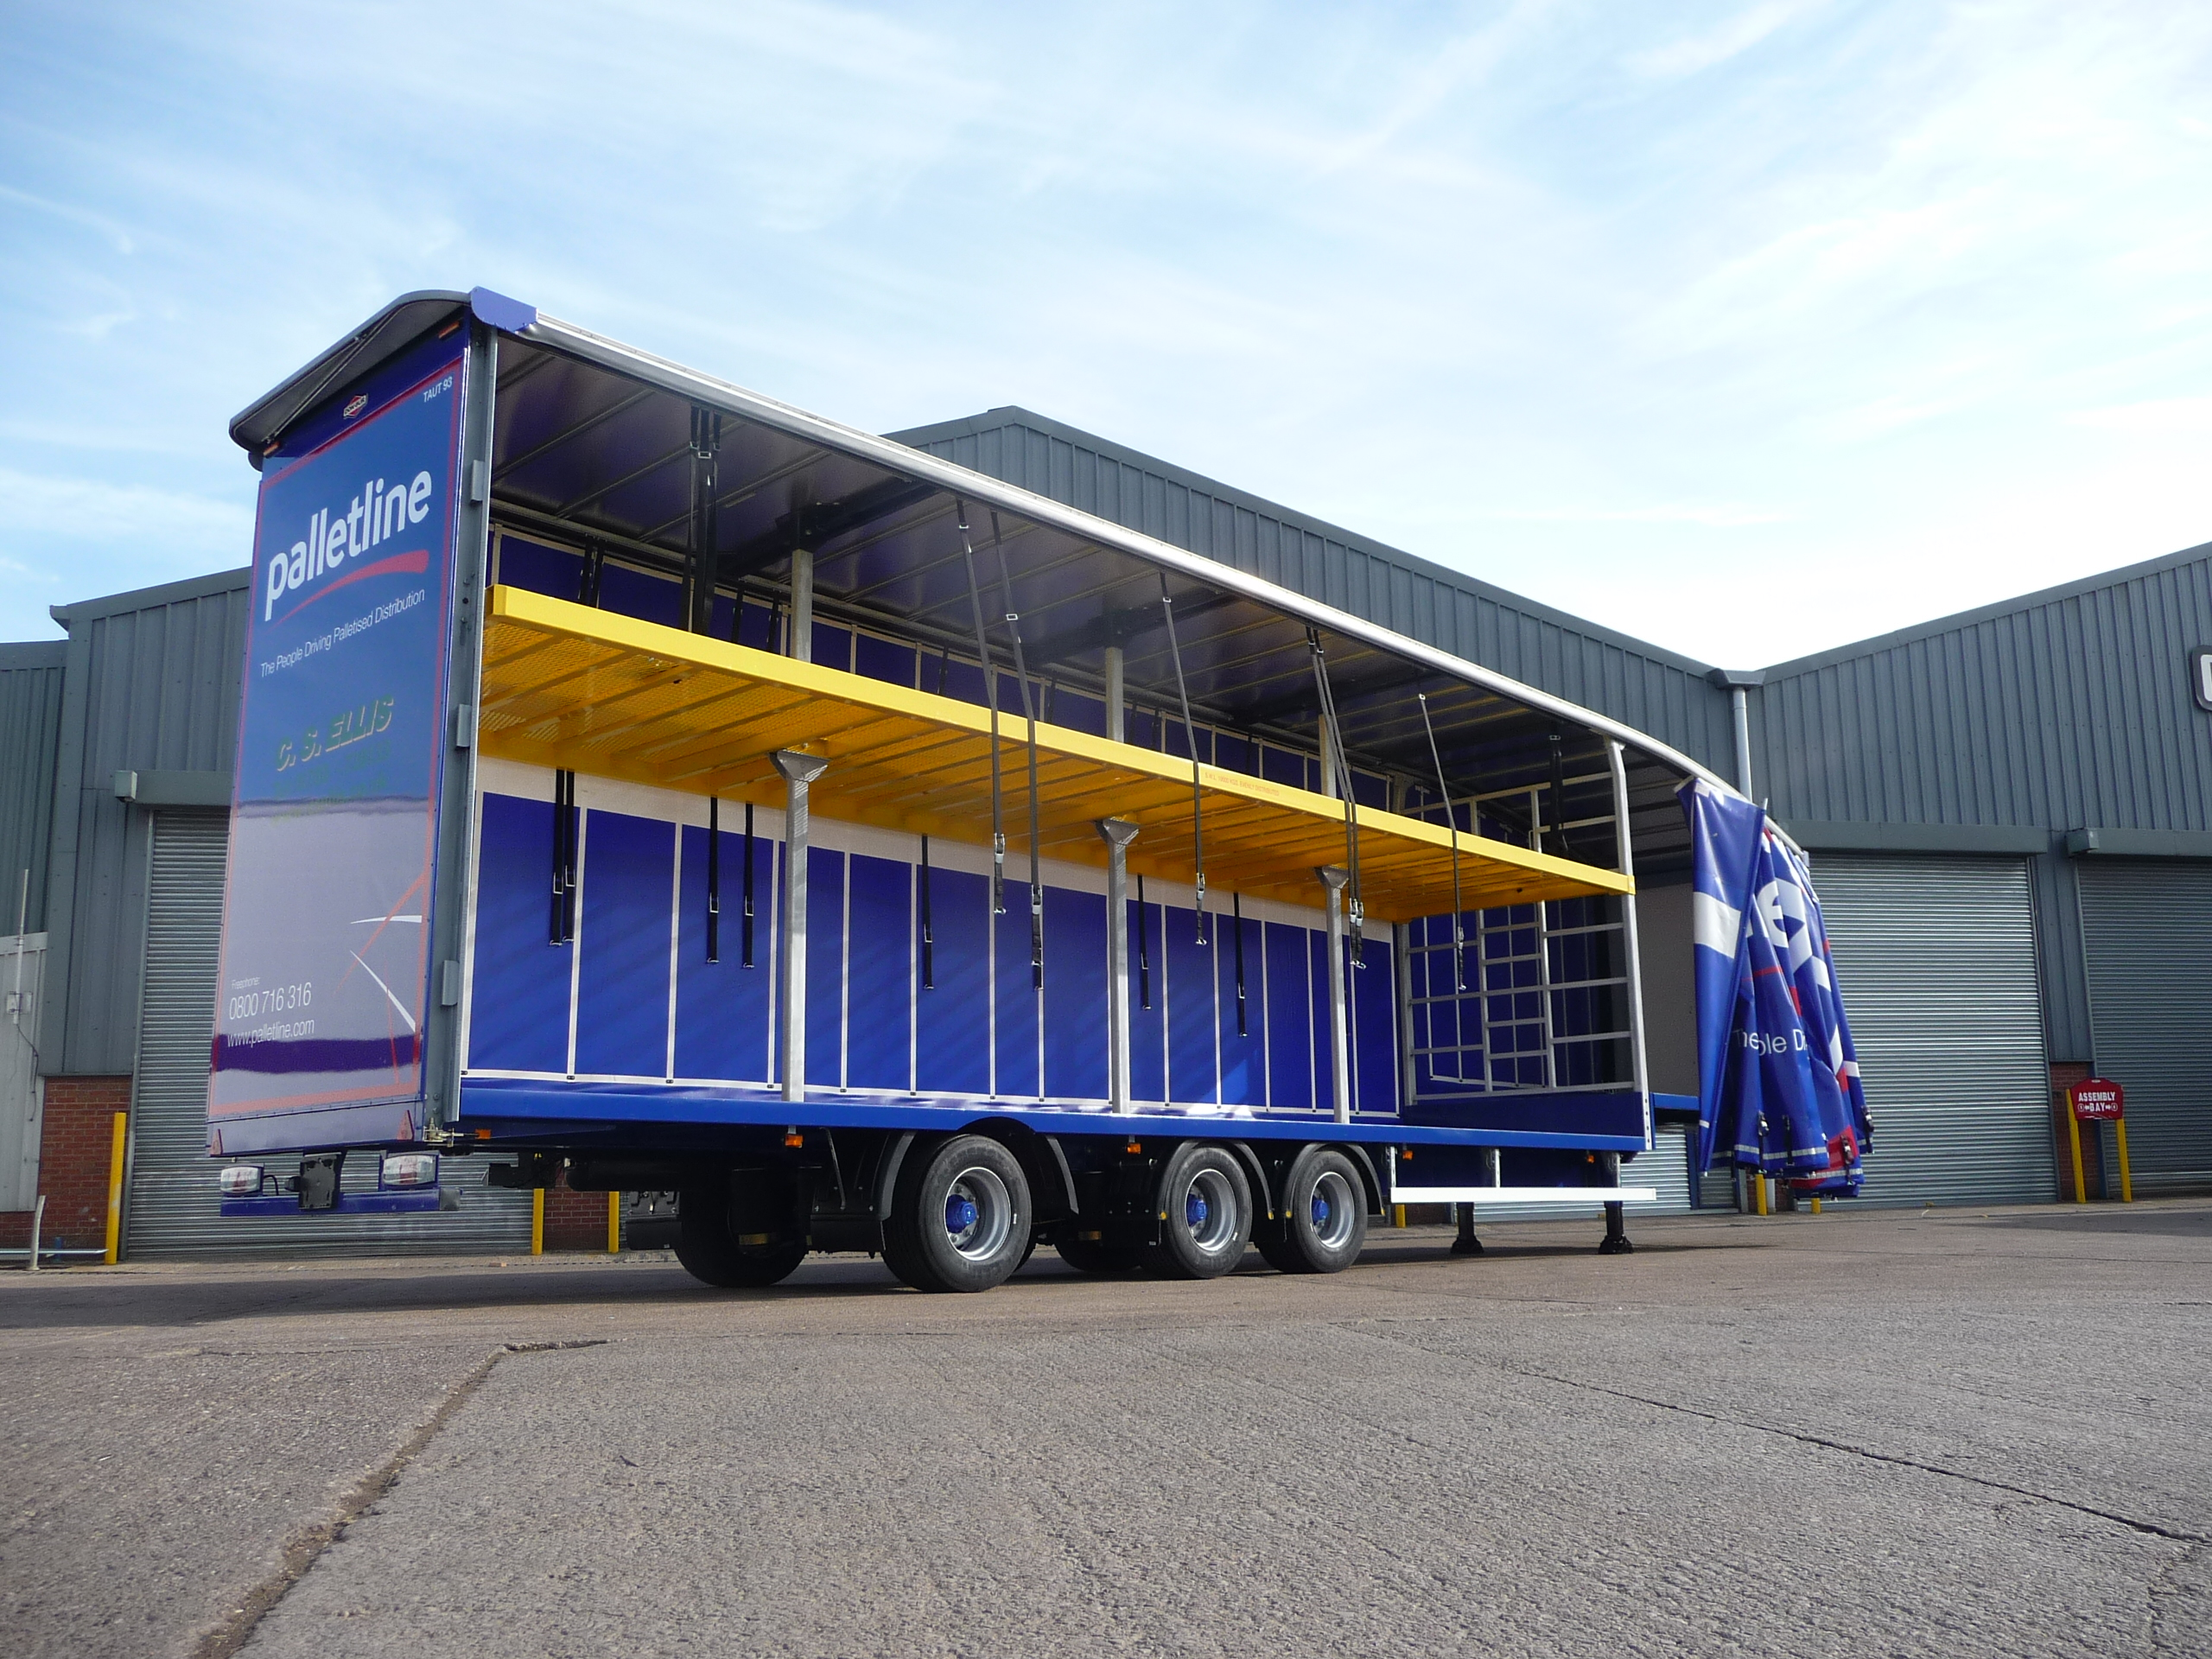 DfT Release Application Details For Longer Semi Trailer Trial Extension